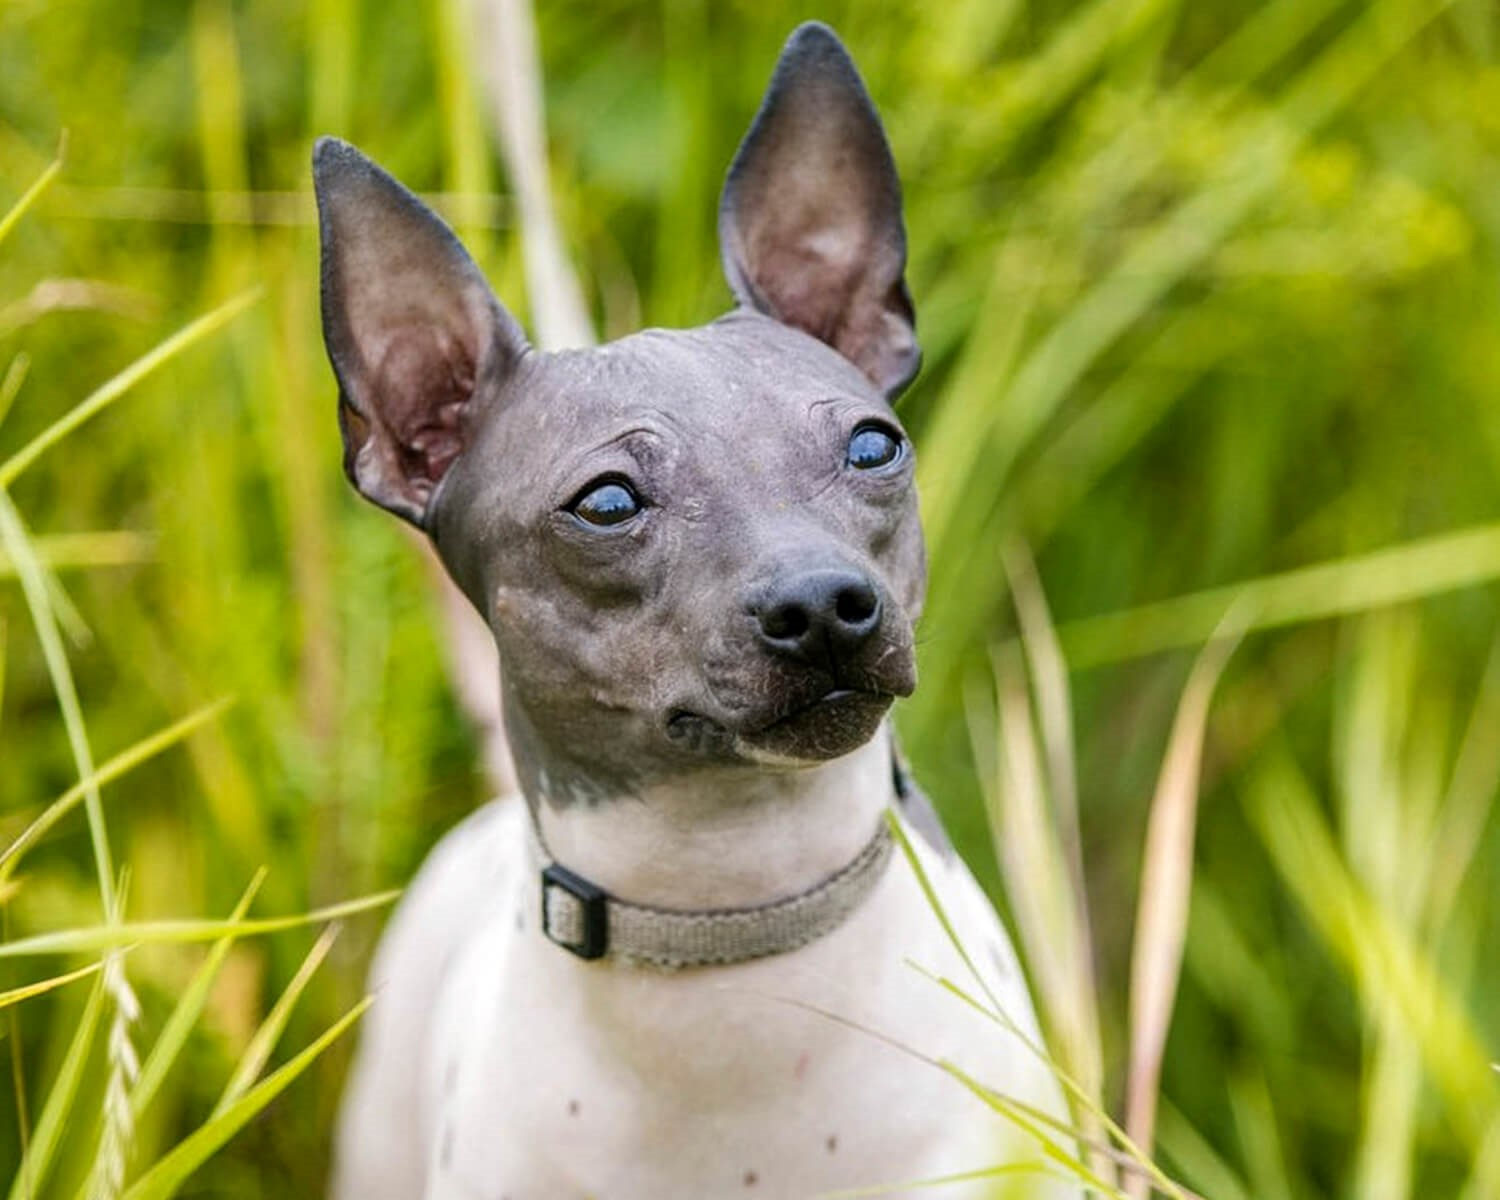 8 new dog breeds that almost no one knows about